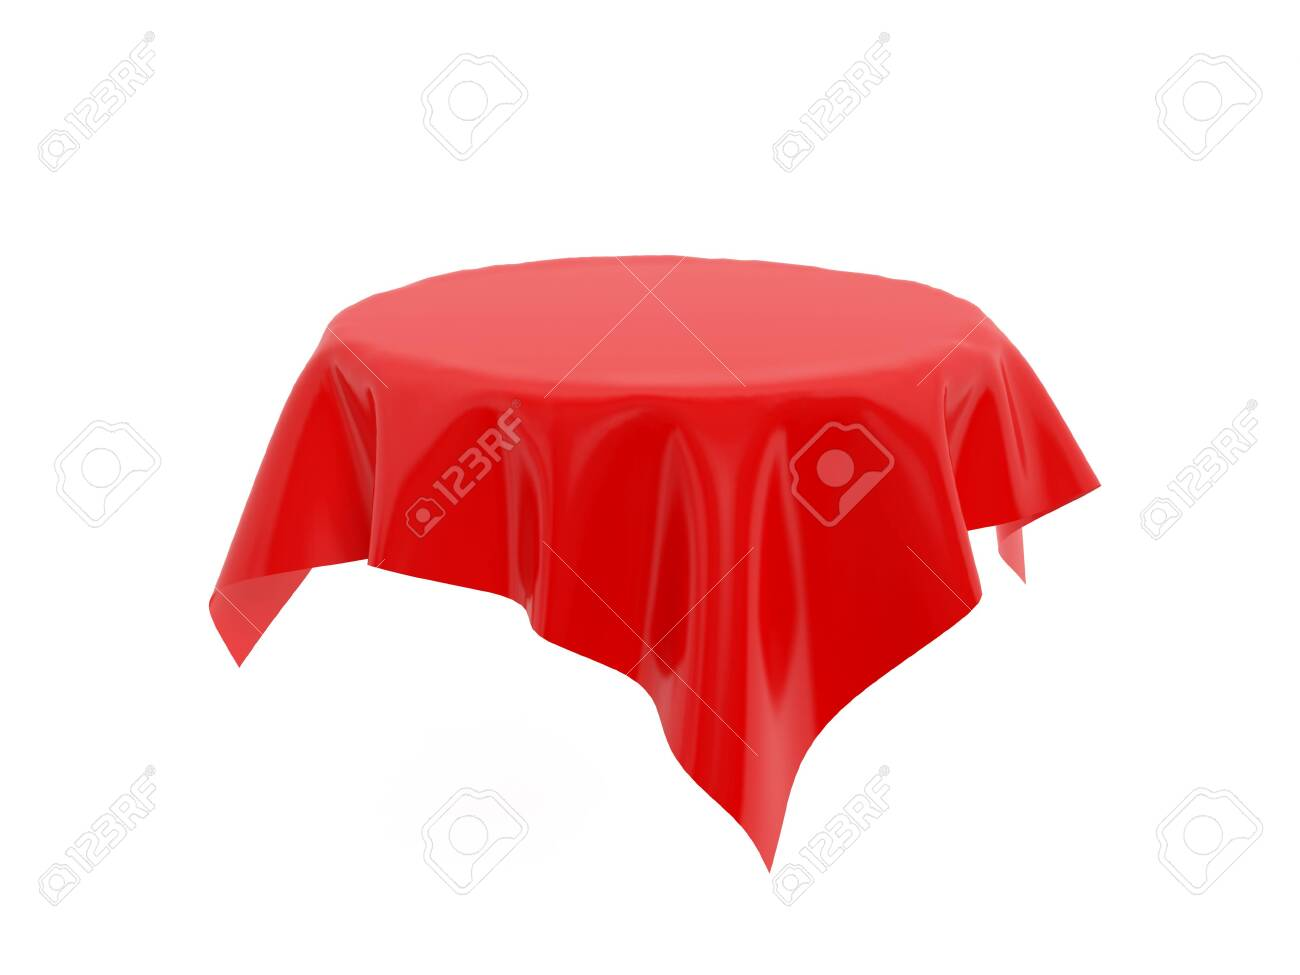 Red tablecloth on invisible round table. 3d rendering illustration isolated on white background - 150521358